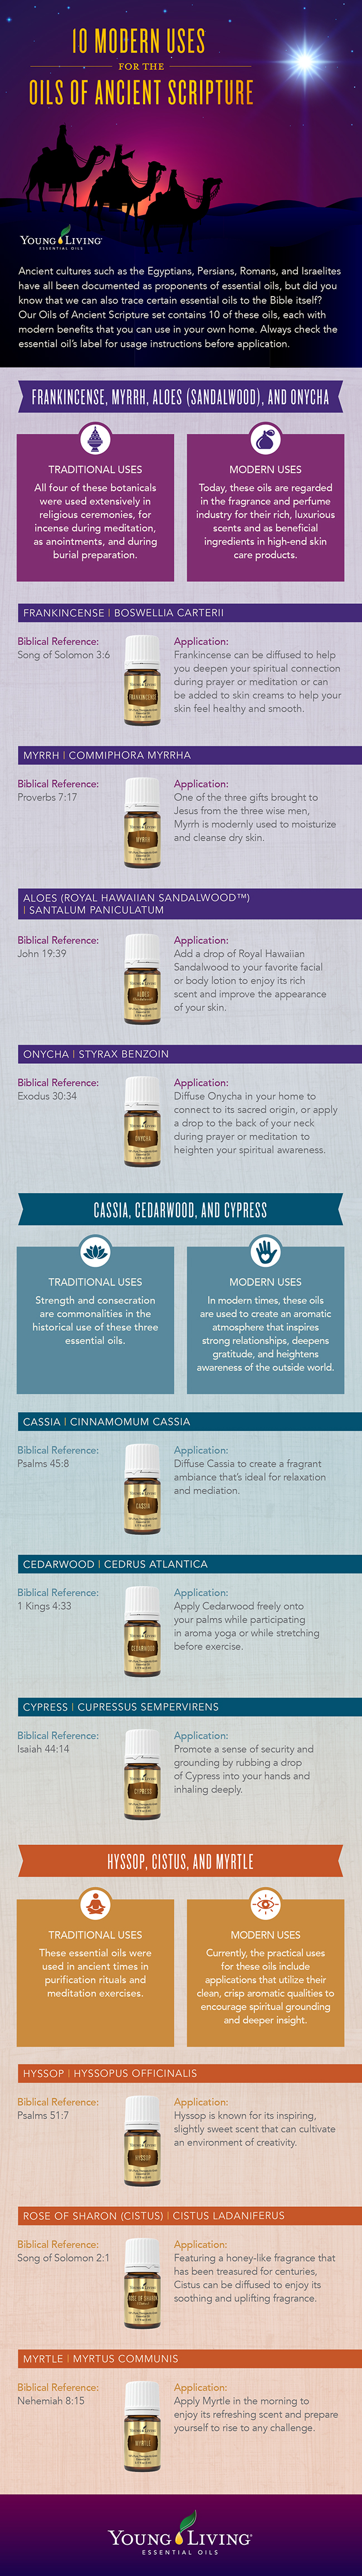 Oils of Ancient Scripture Infographic